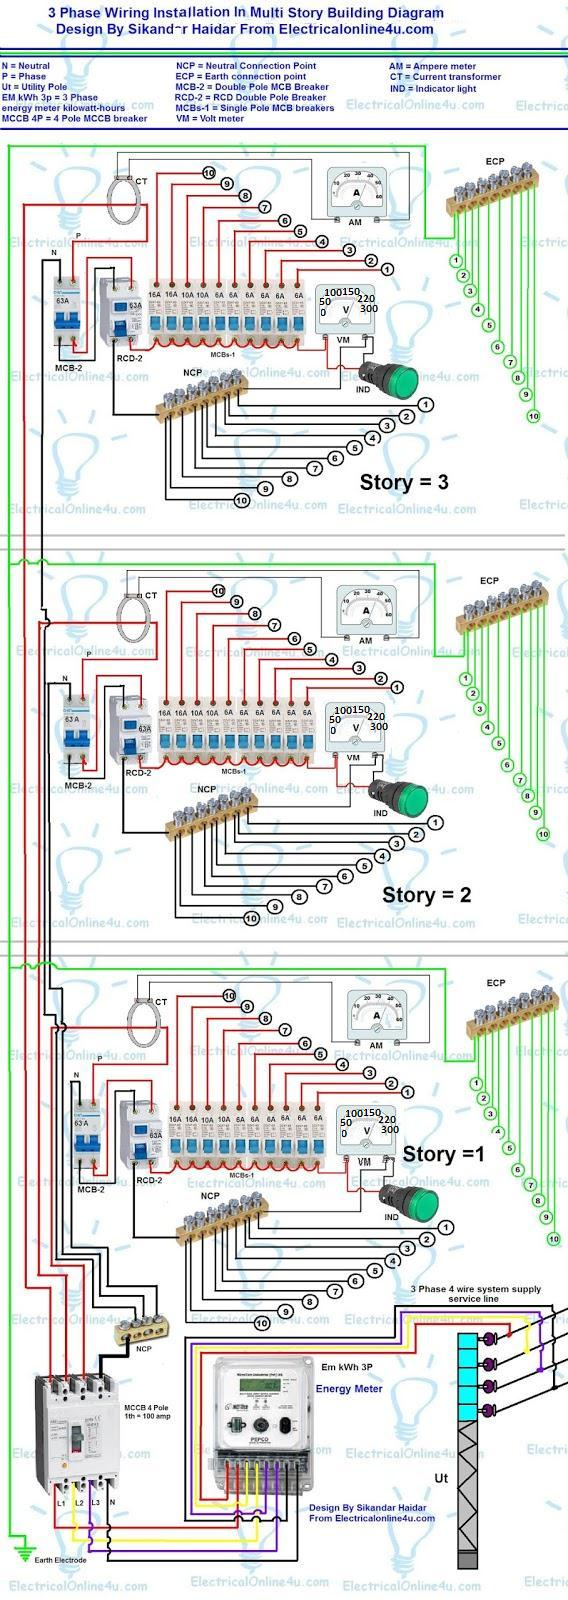 hight resolution of 3 phase wiring installation diagram